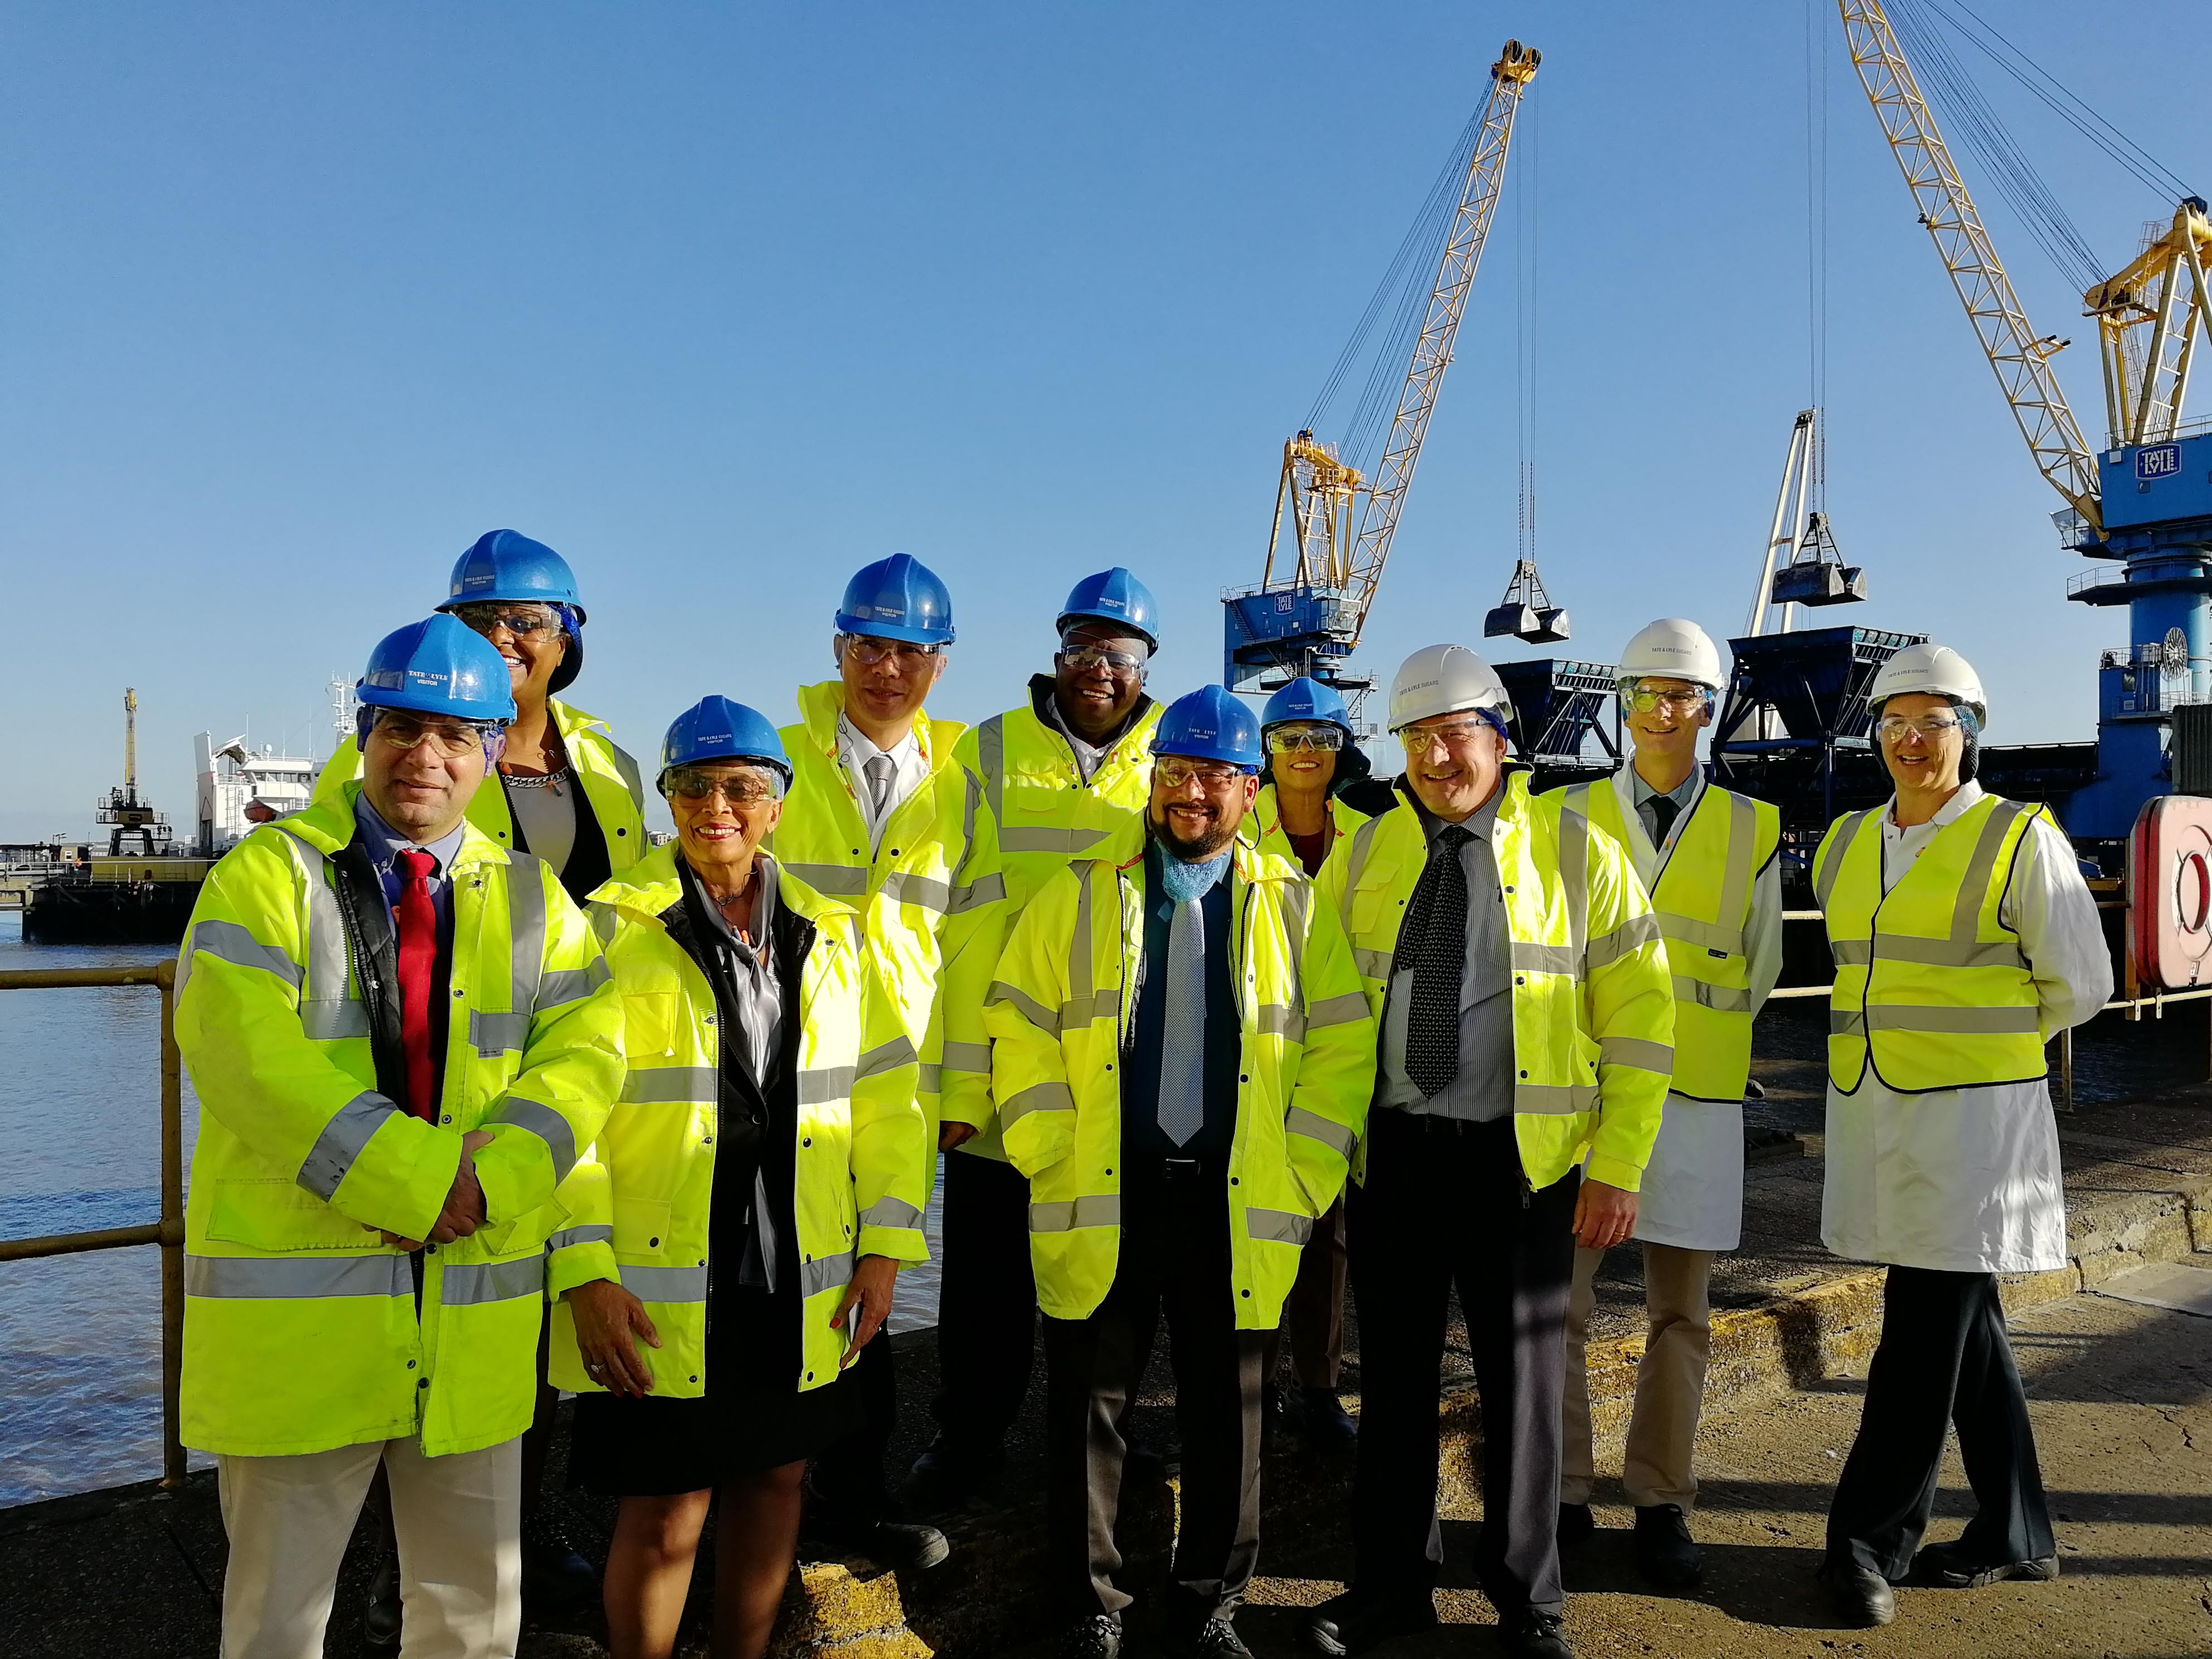 Field visit to the Tate & Lyle Sugars (TLS) Thames Refinery